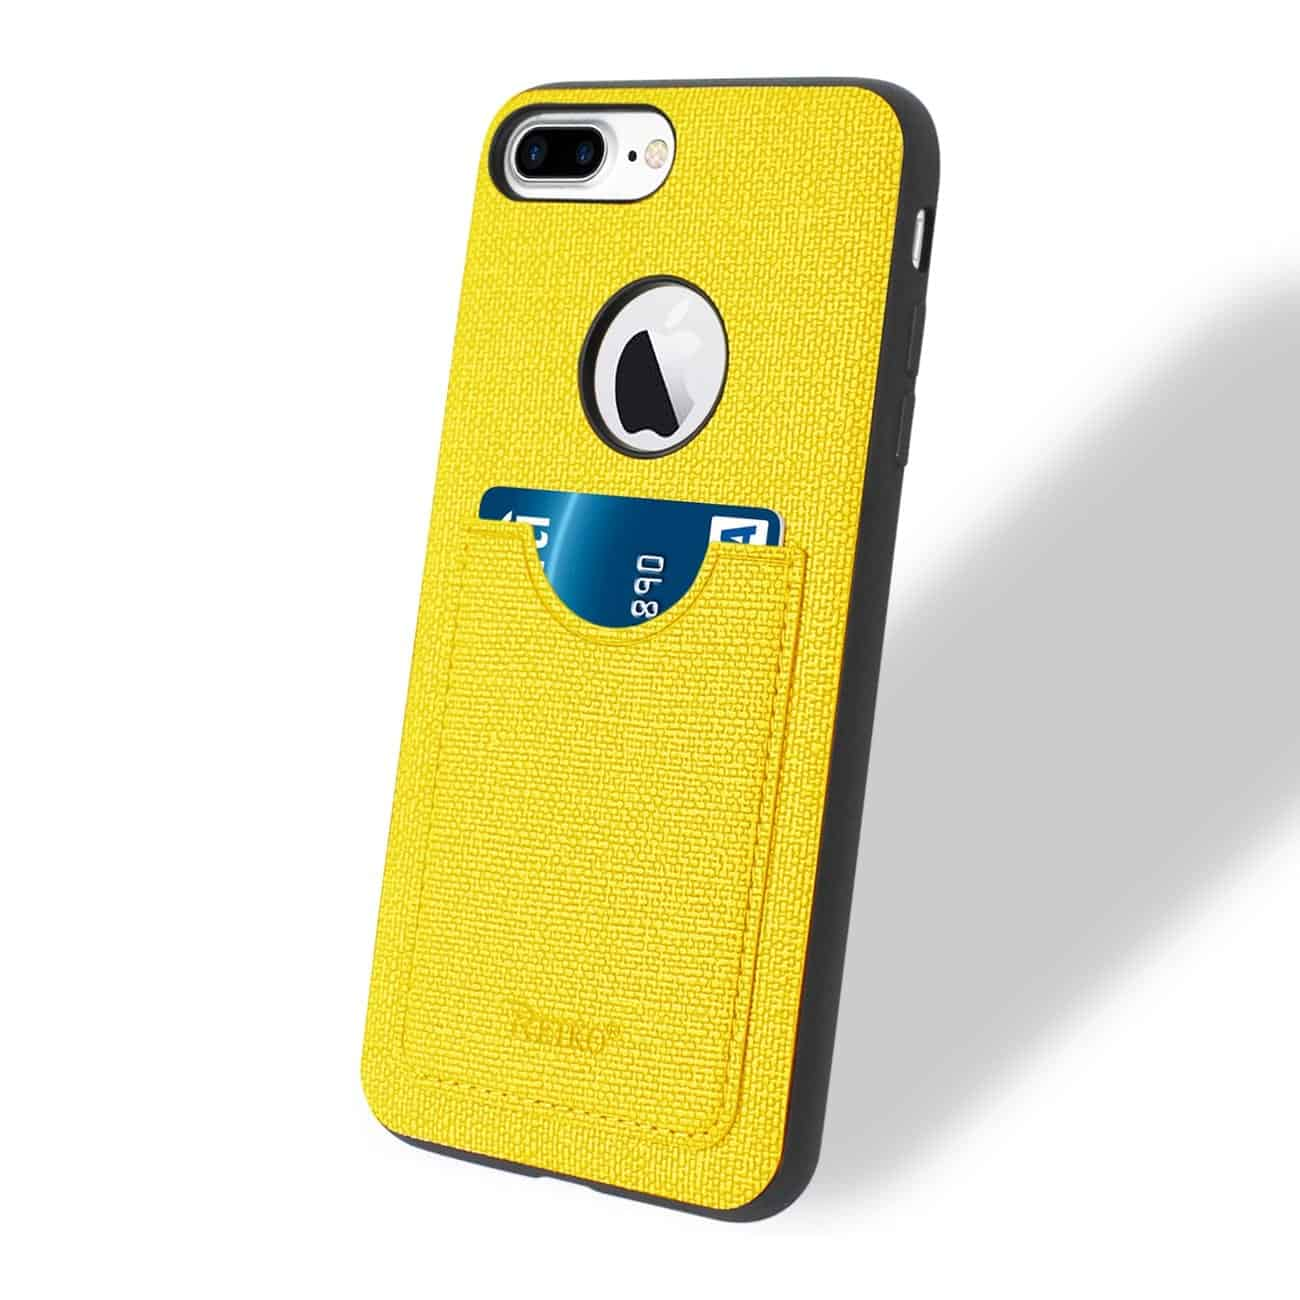 IPHONE 7 PLUS/ 6S PLUS/ 6 PLUS ANTI-SLIP TEXTURE PROTECTOR COVER WITH CARD SLOT IN YELLOW